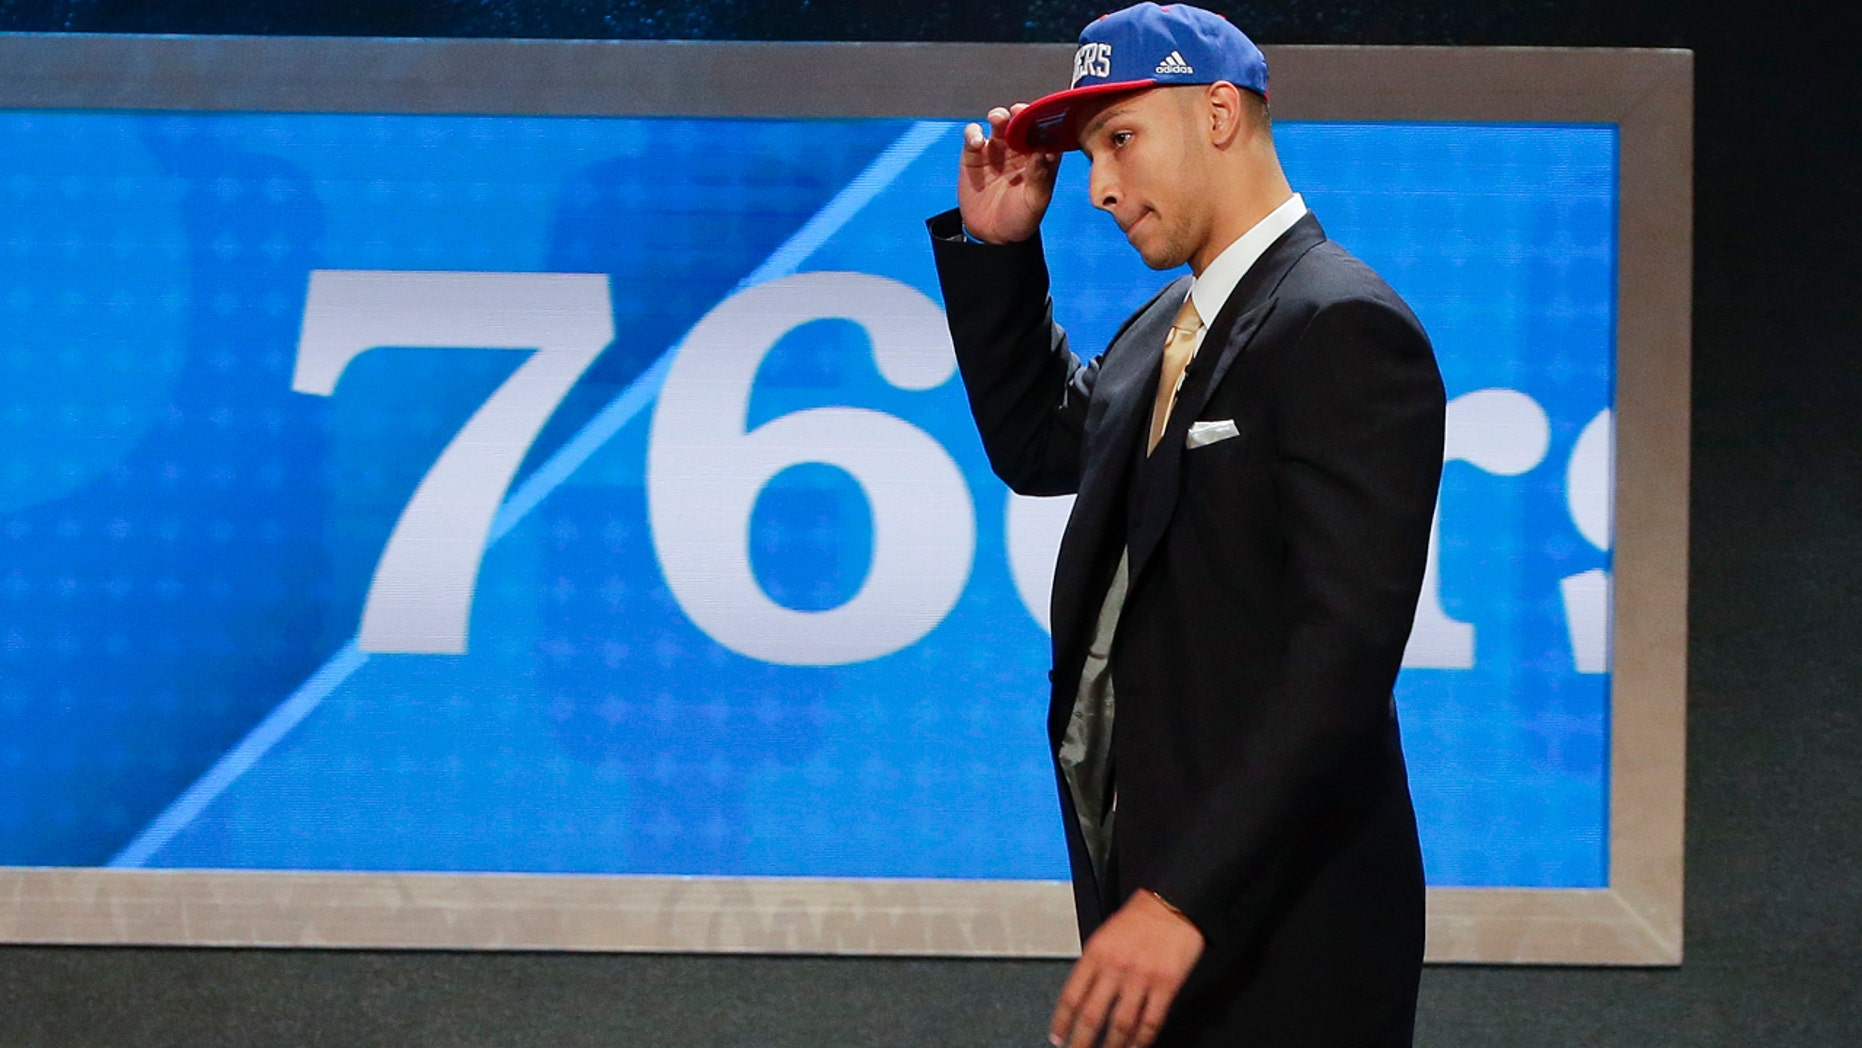 June 23, 2016: LSU's Ben Simmons walks up on stage after being selected as the top pick by the Philadelphia 76ers during the NBA Draft in New York.